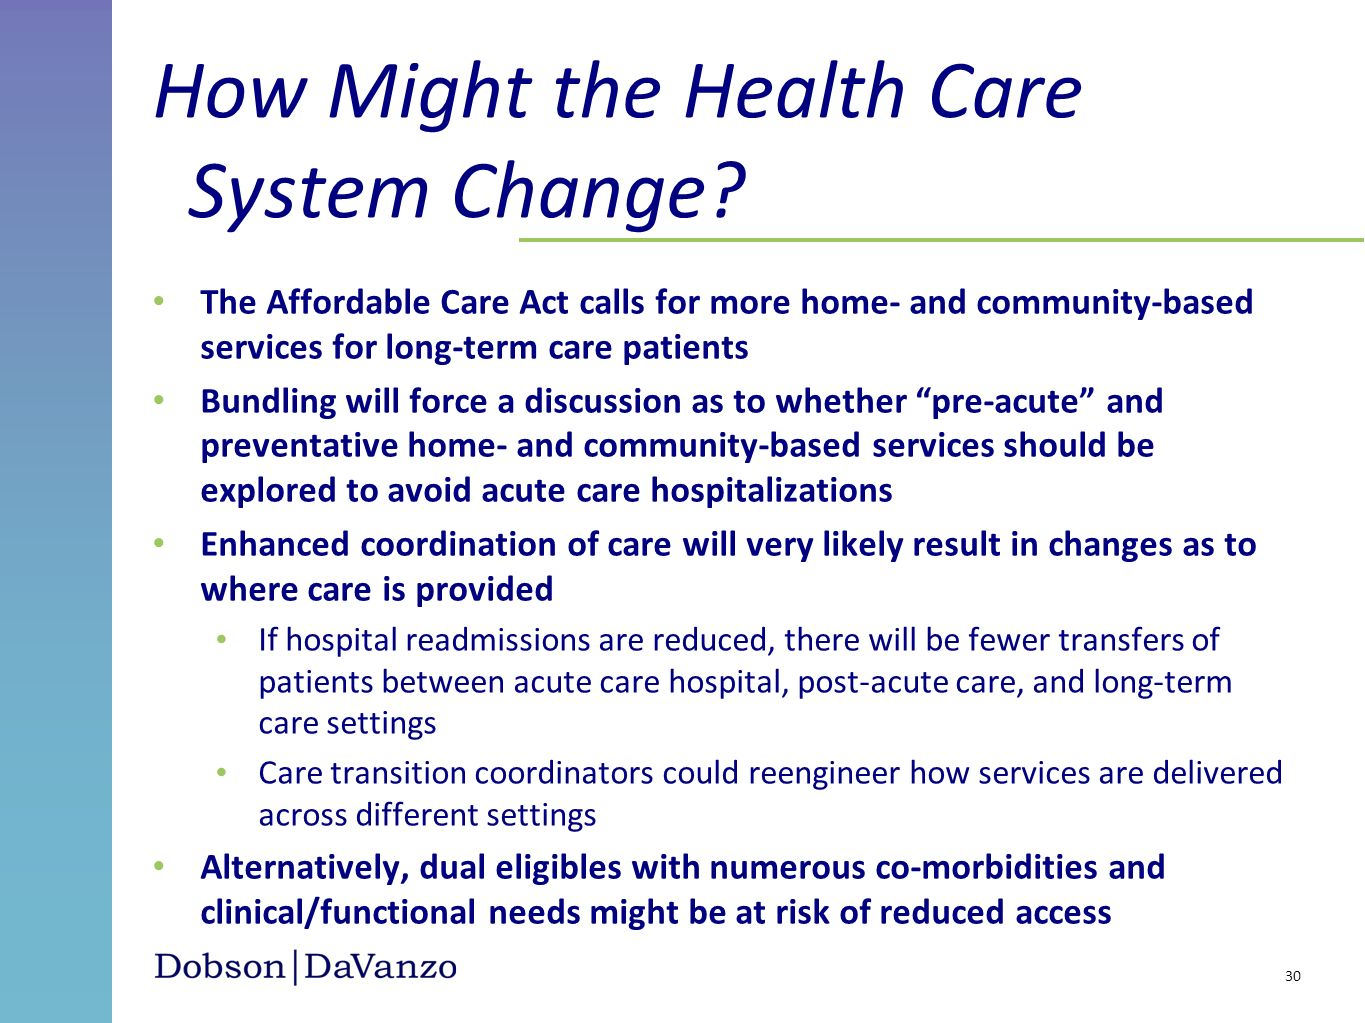 How Might the Health Care System Change